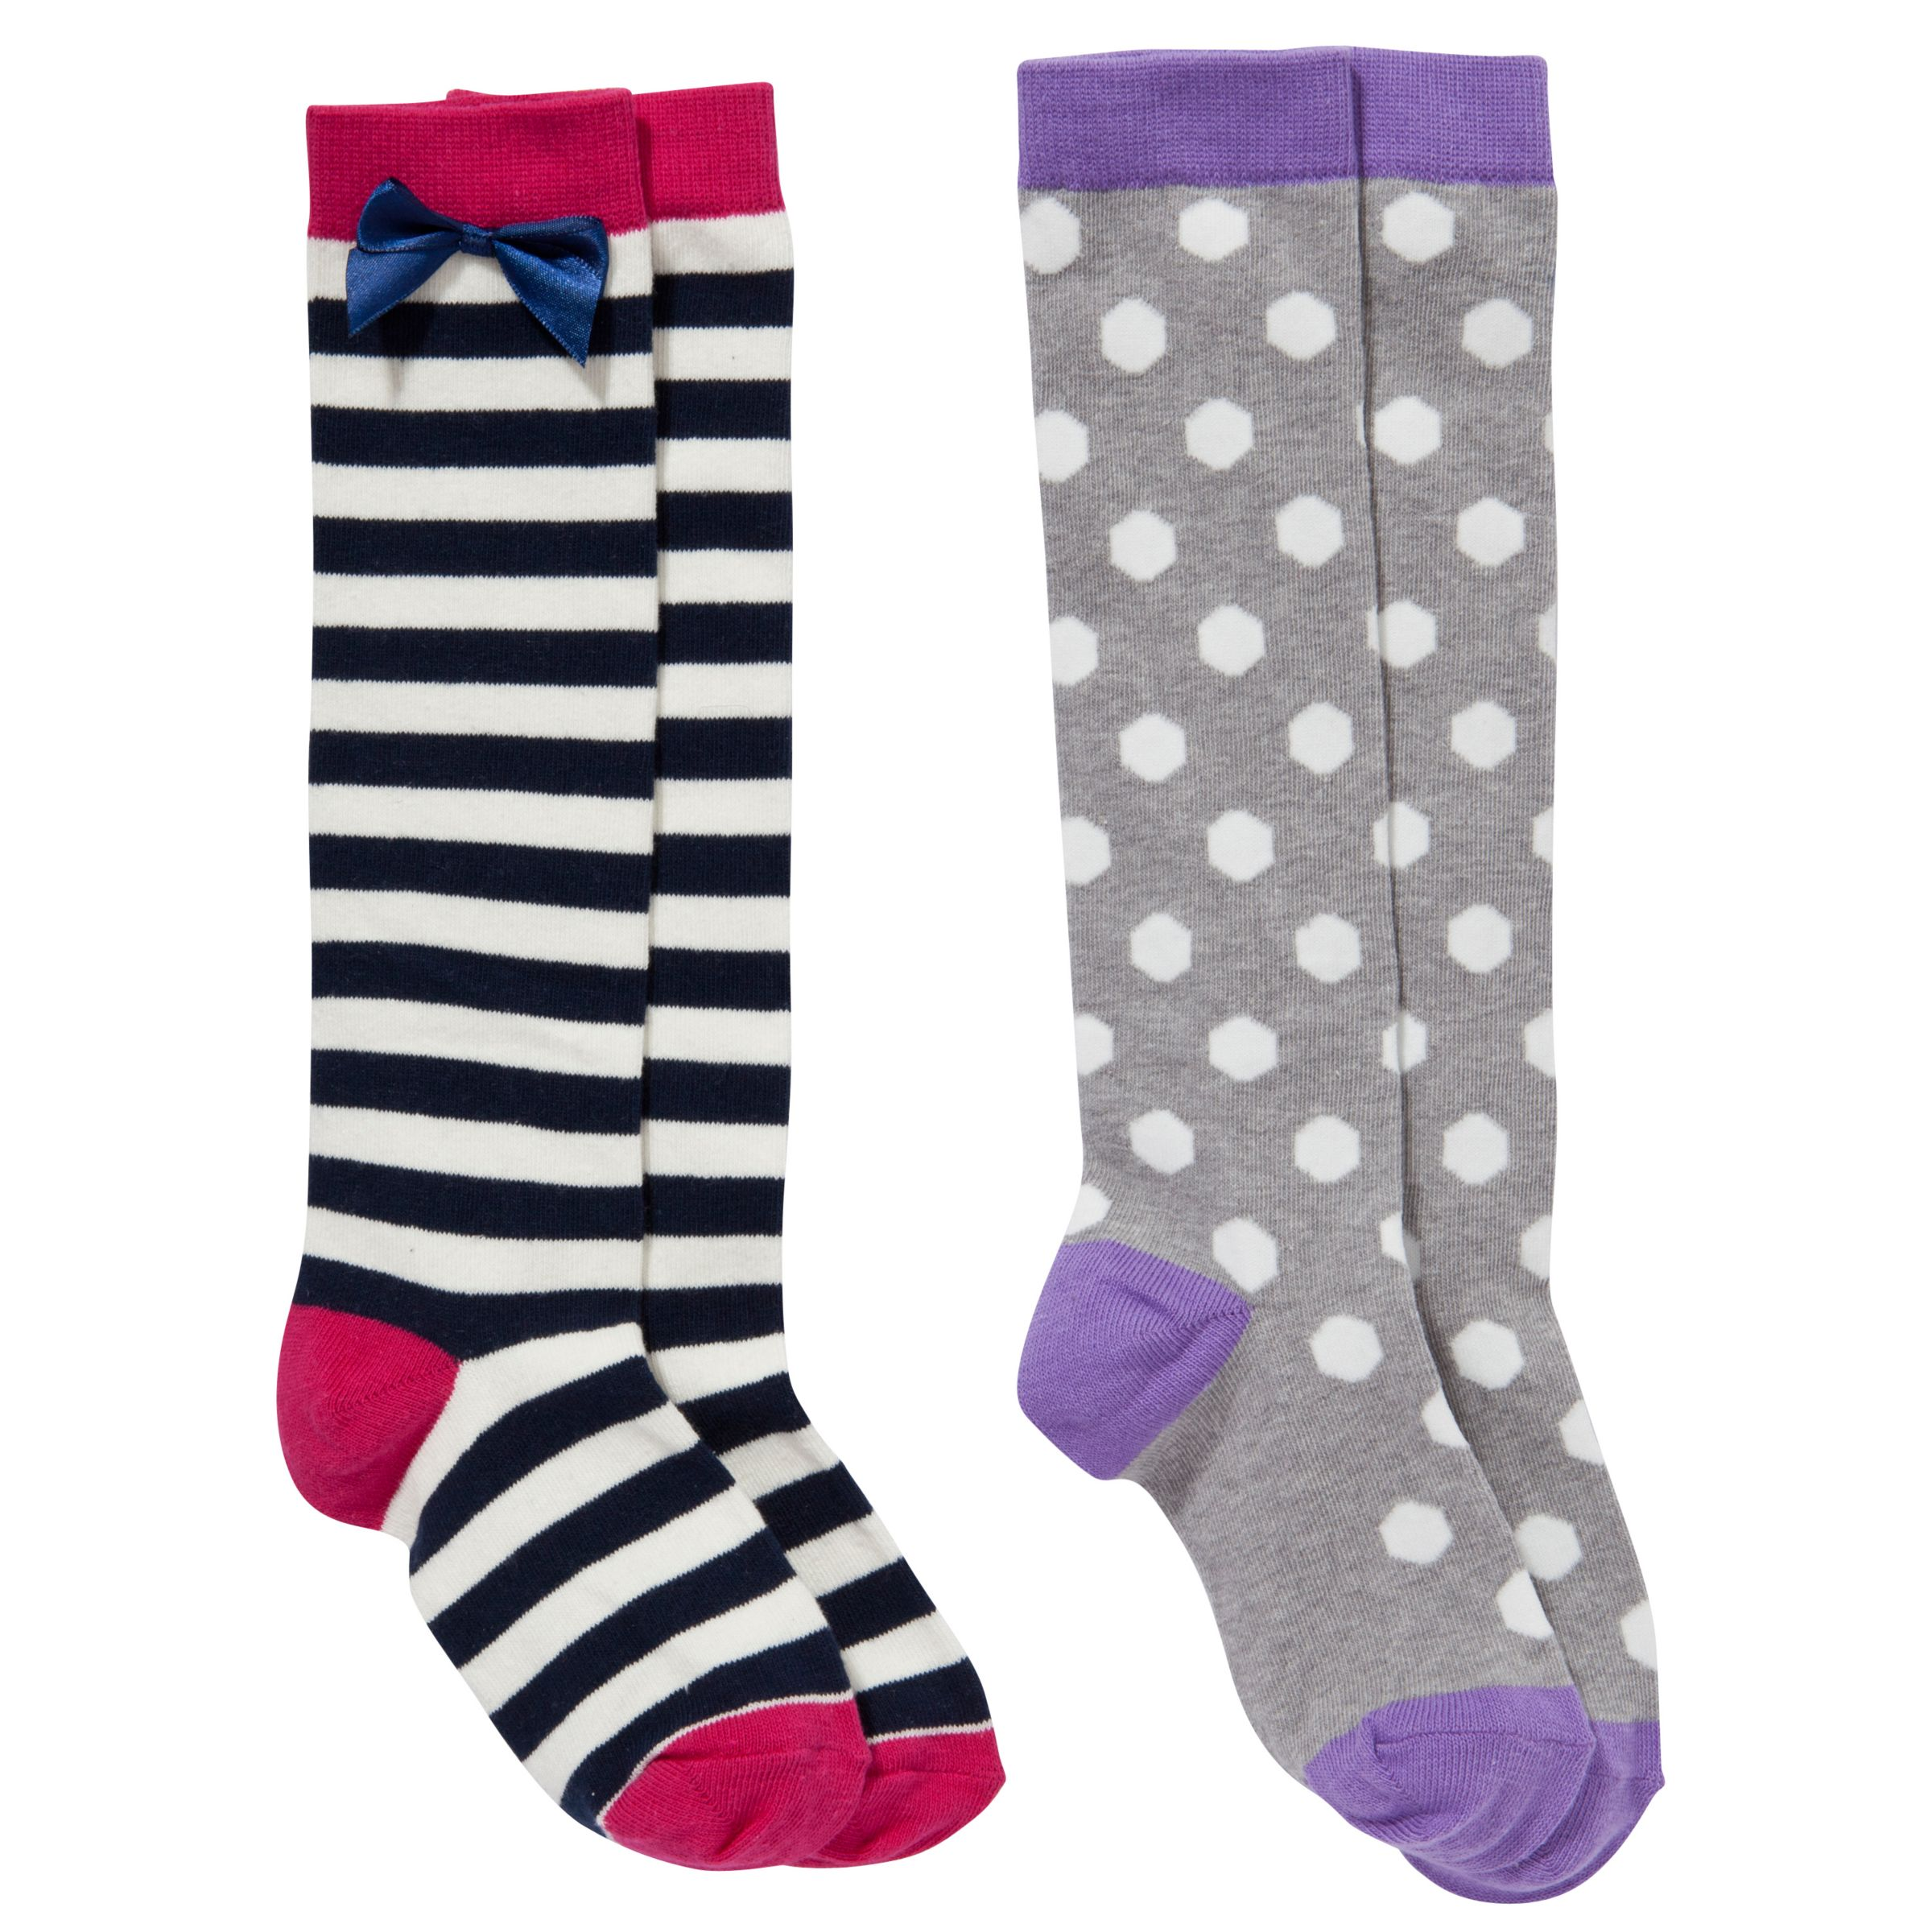 John Lewis Girl Knee High Socks, Pack of 2, Multi